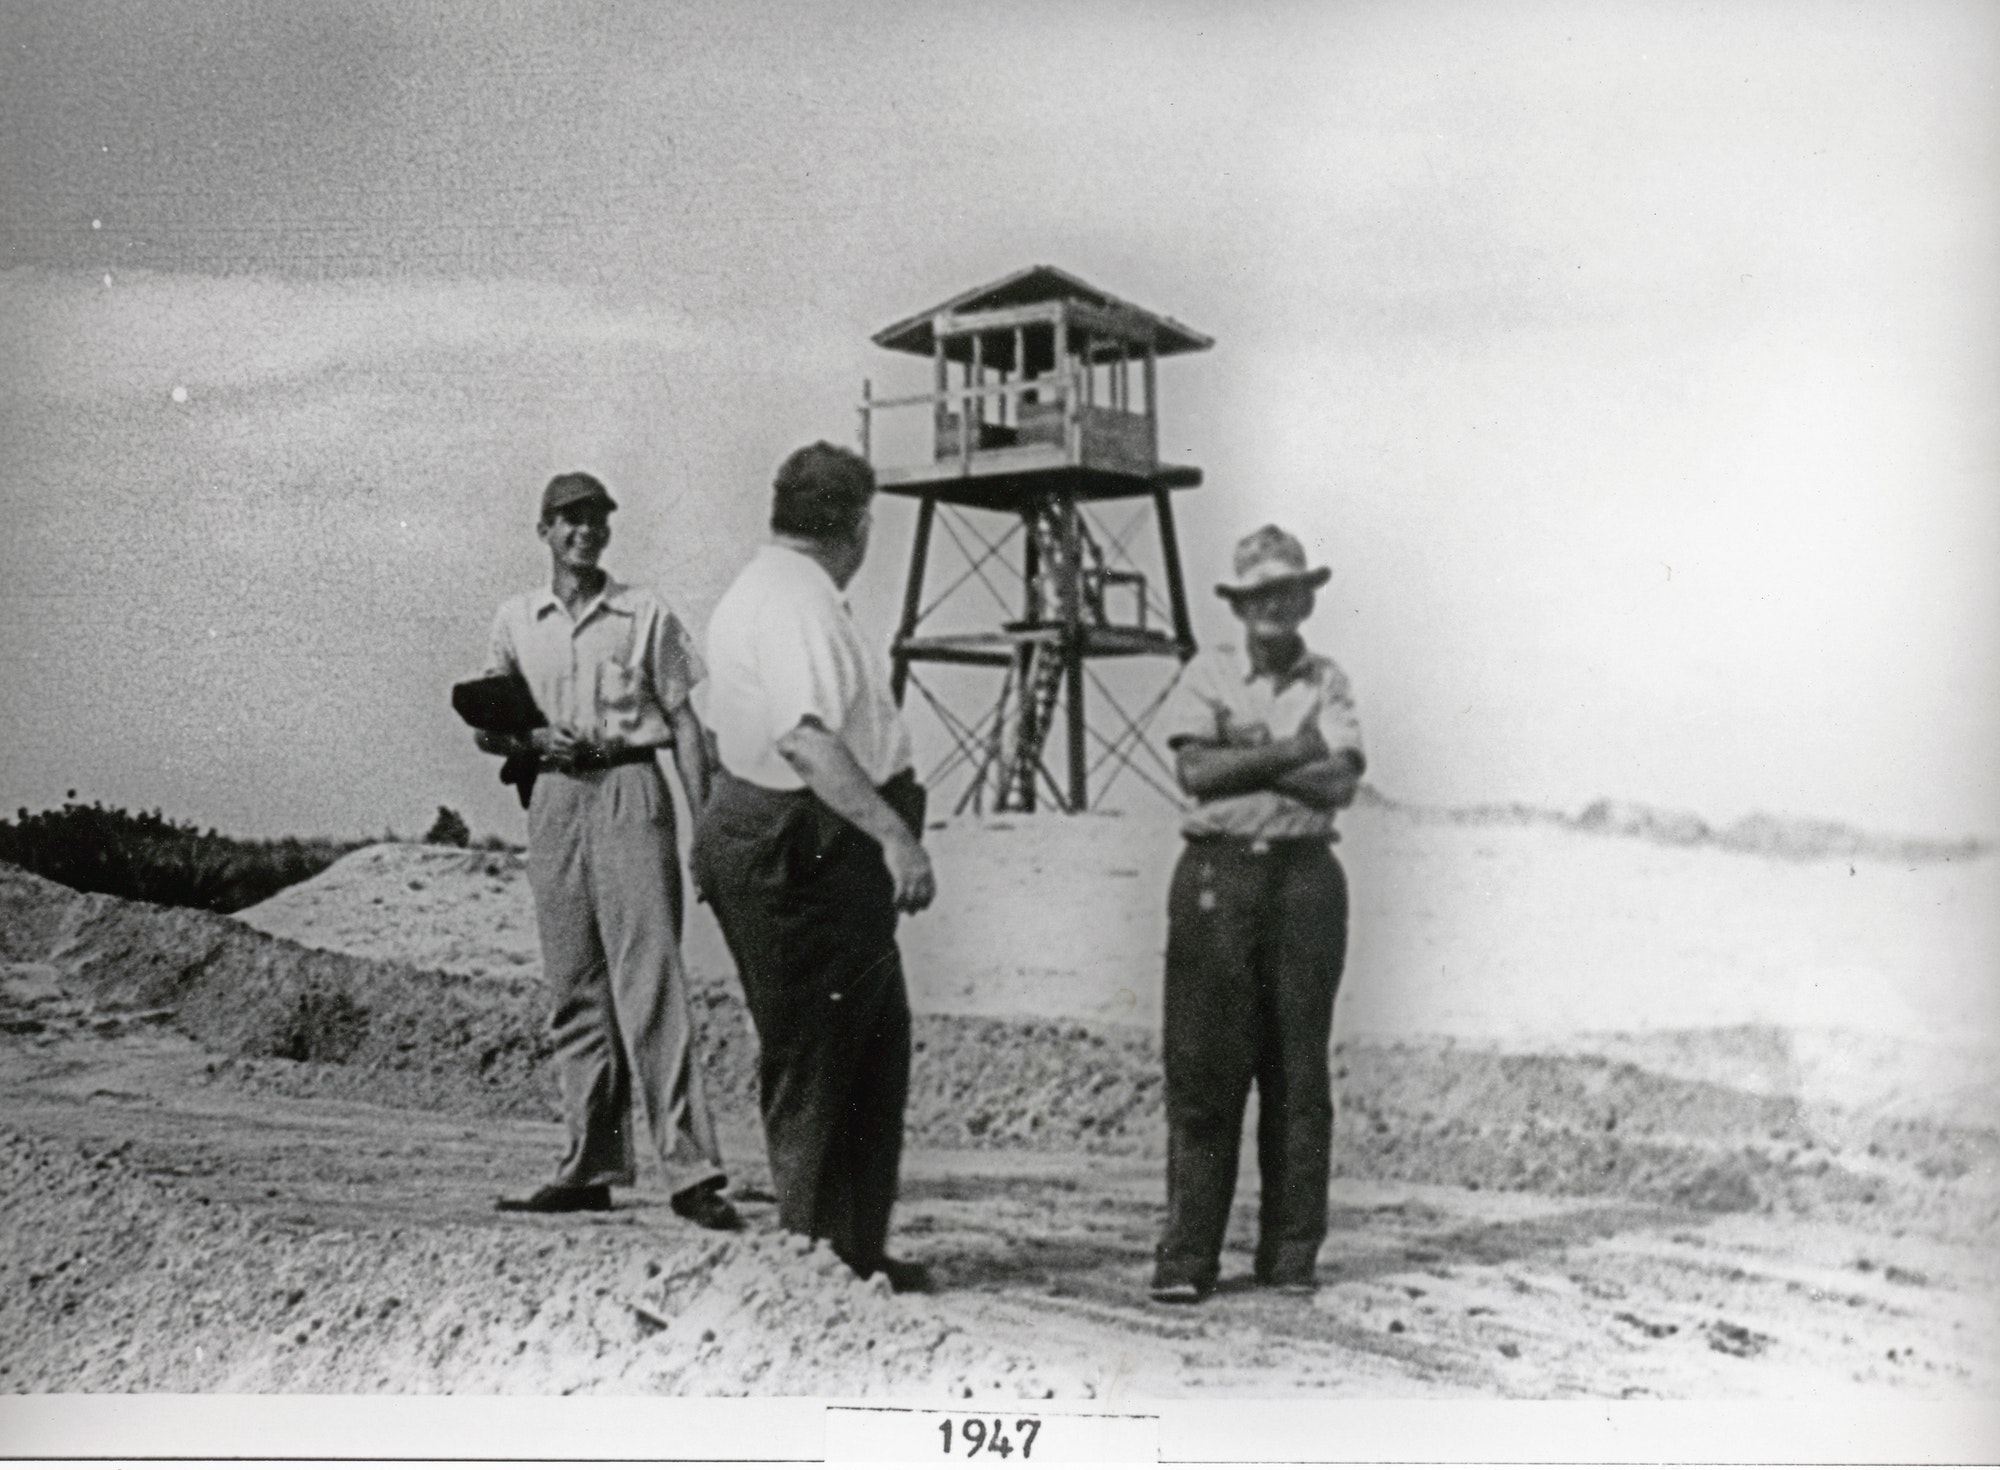 Three men standing on beach in front of wooden world war 2 spotting tower